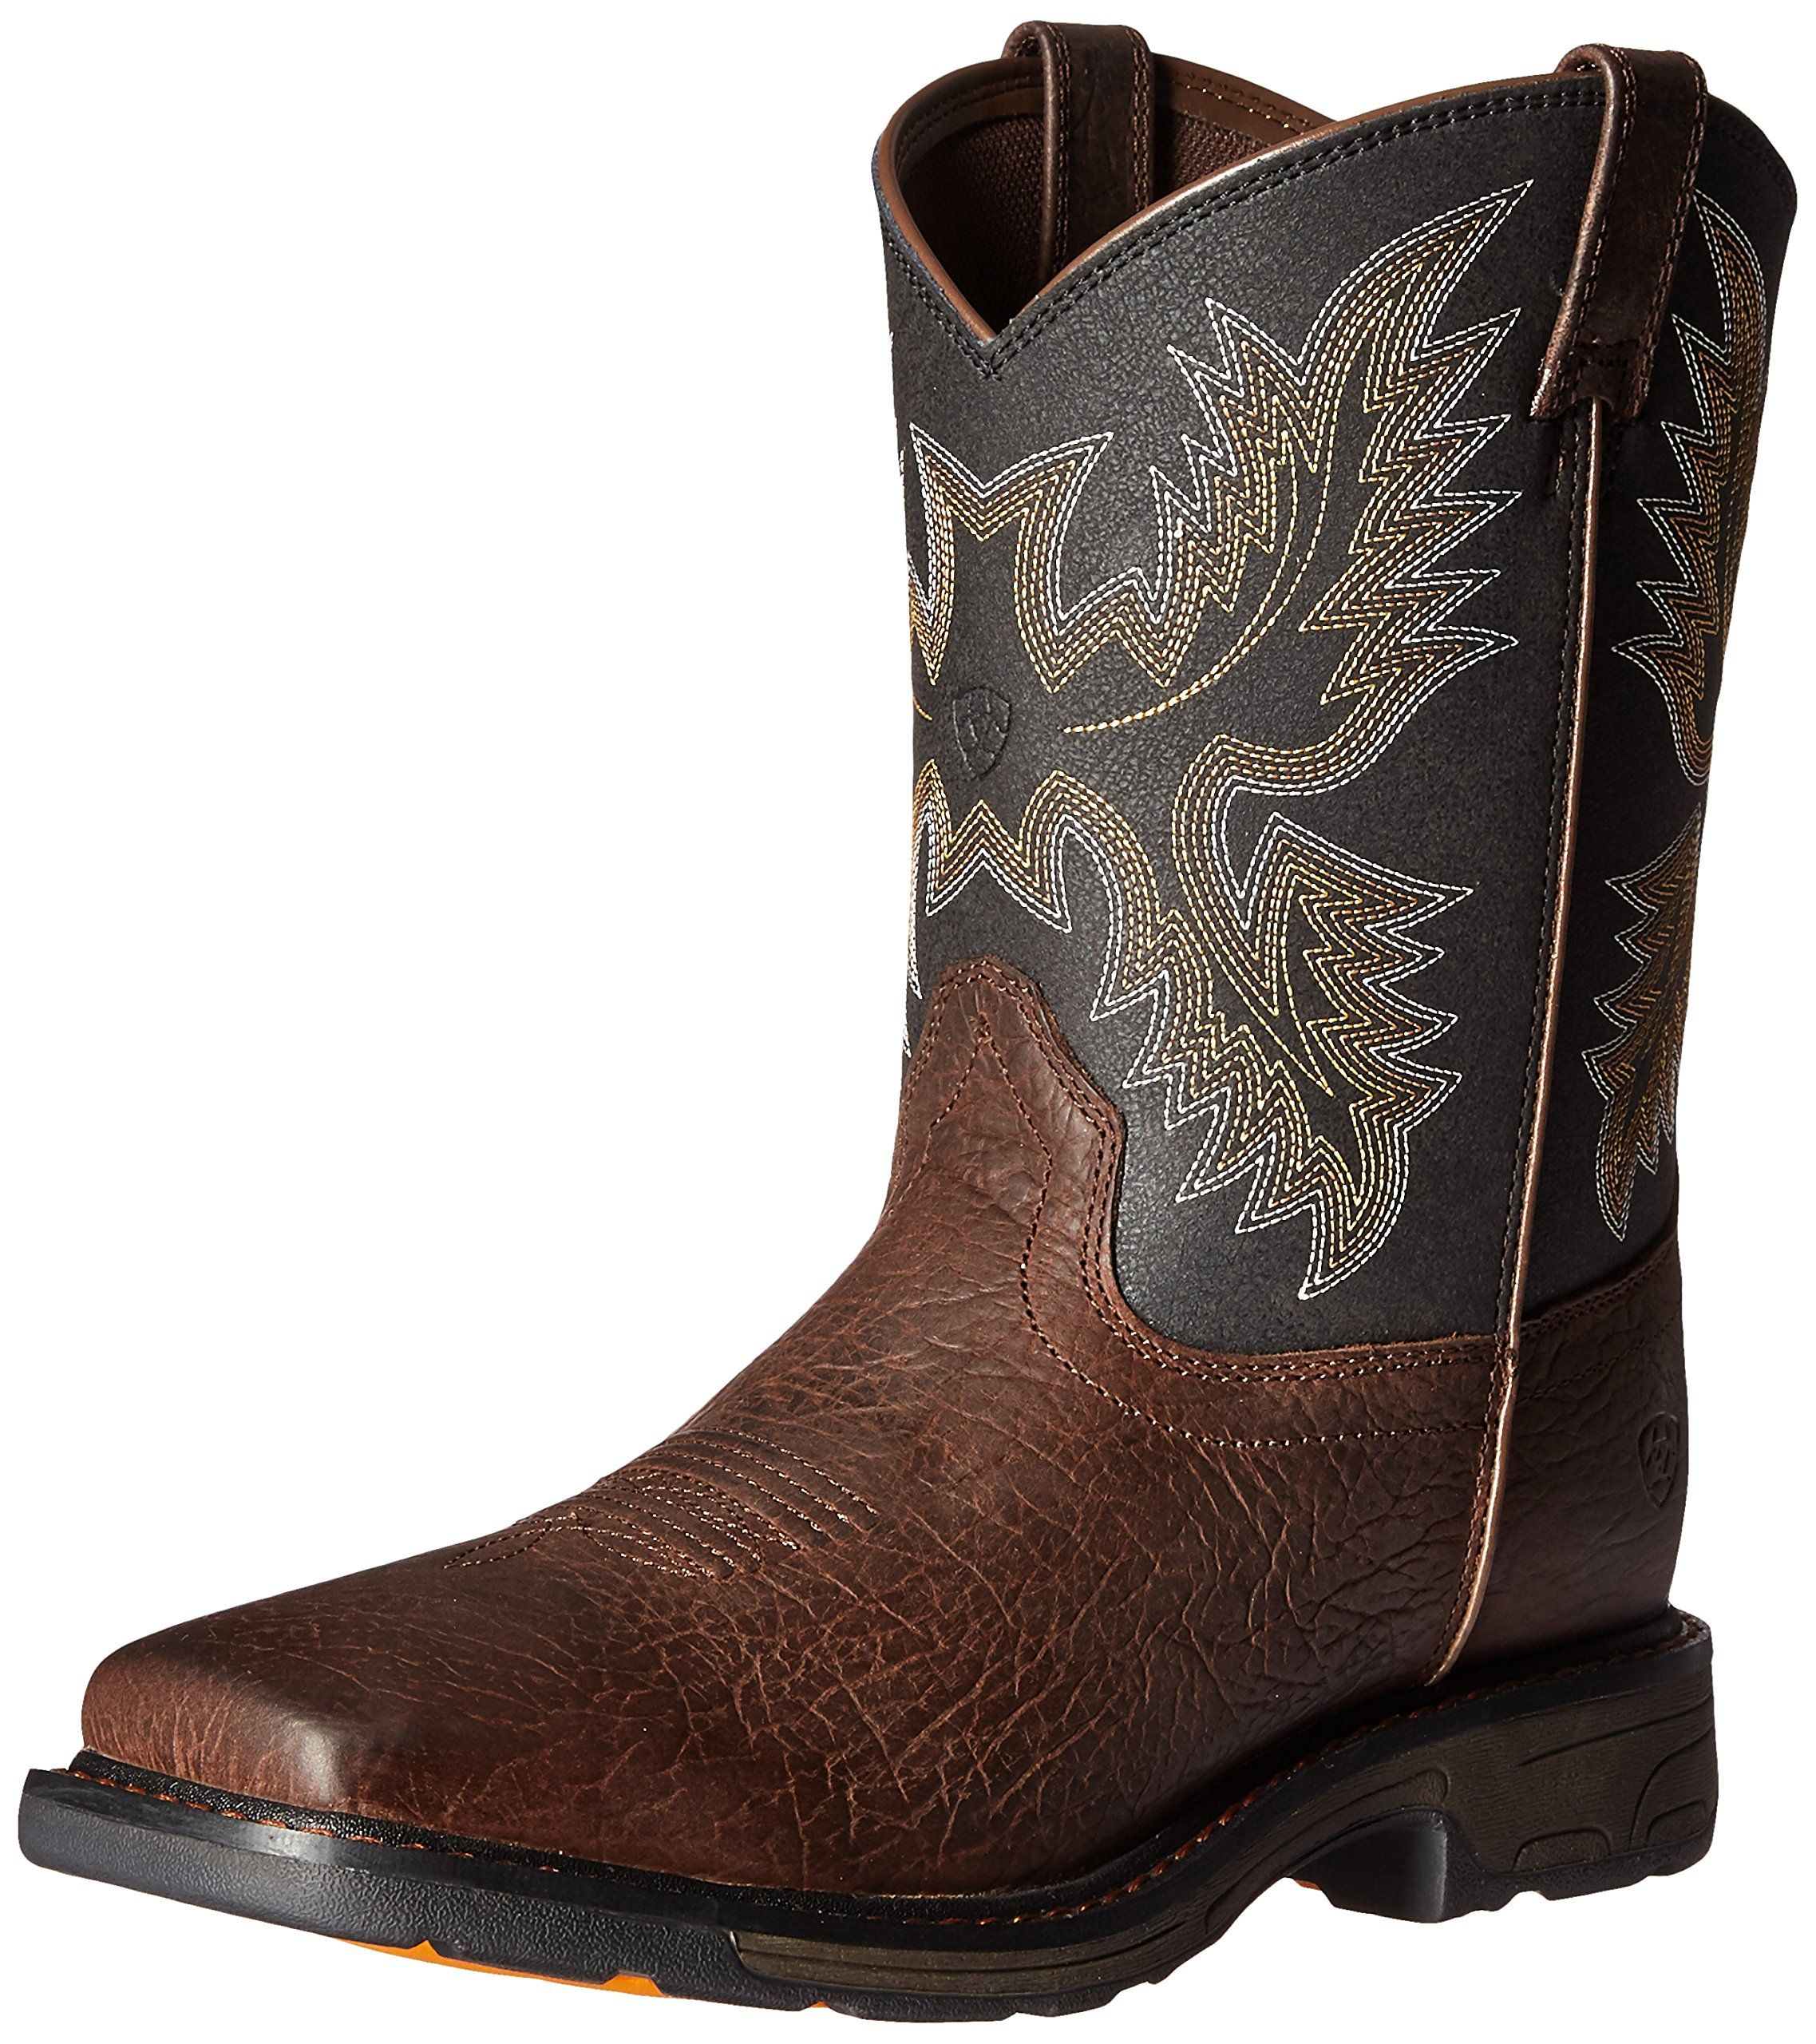 ffa27214e1b Ariat Mens Sport Sidewinder Work Boot Golden Grizzly 10 E US * Want ...